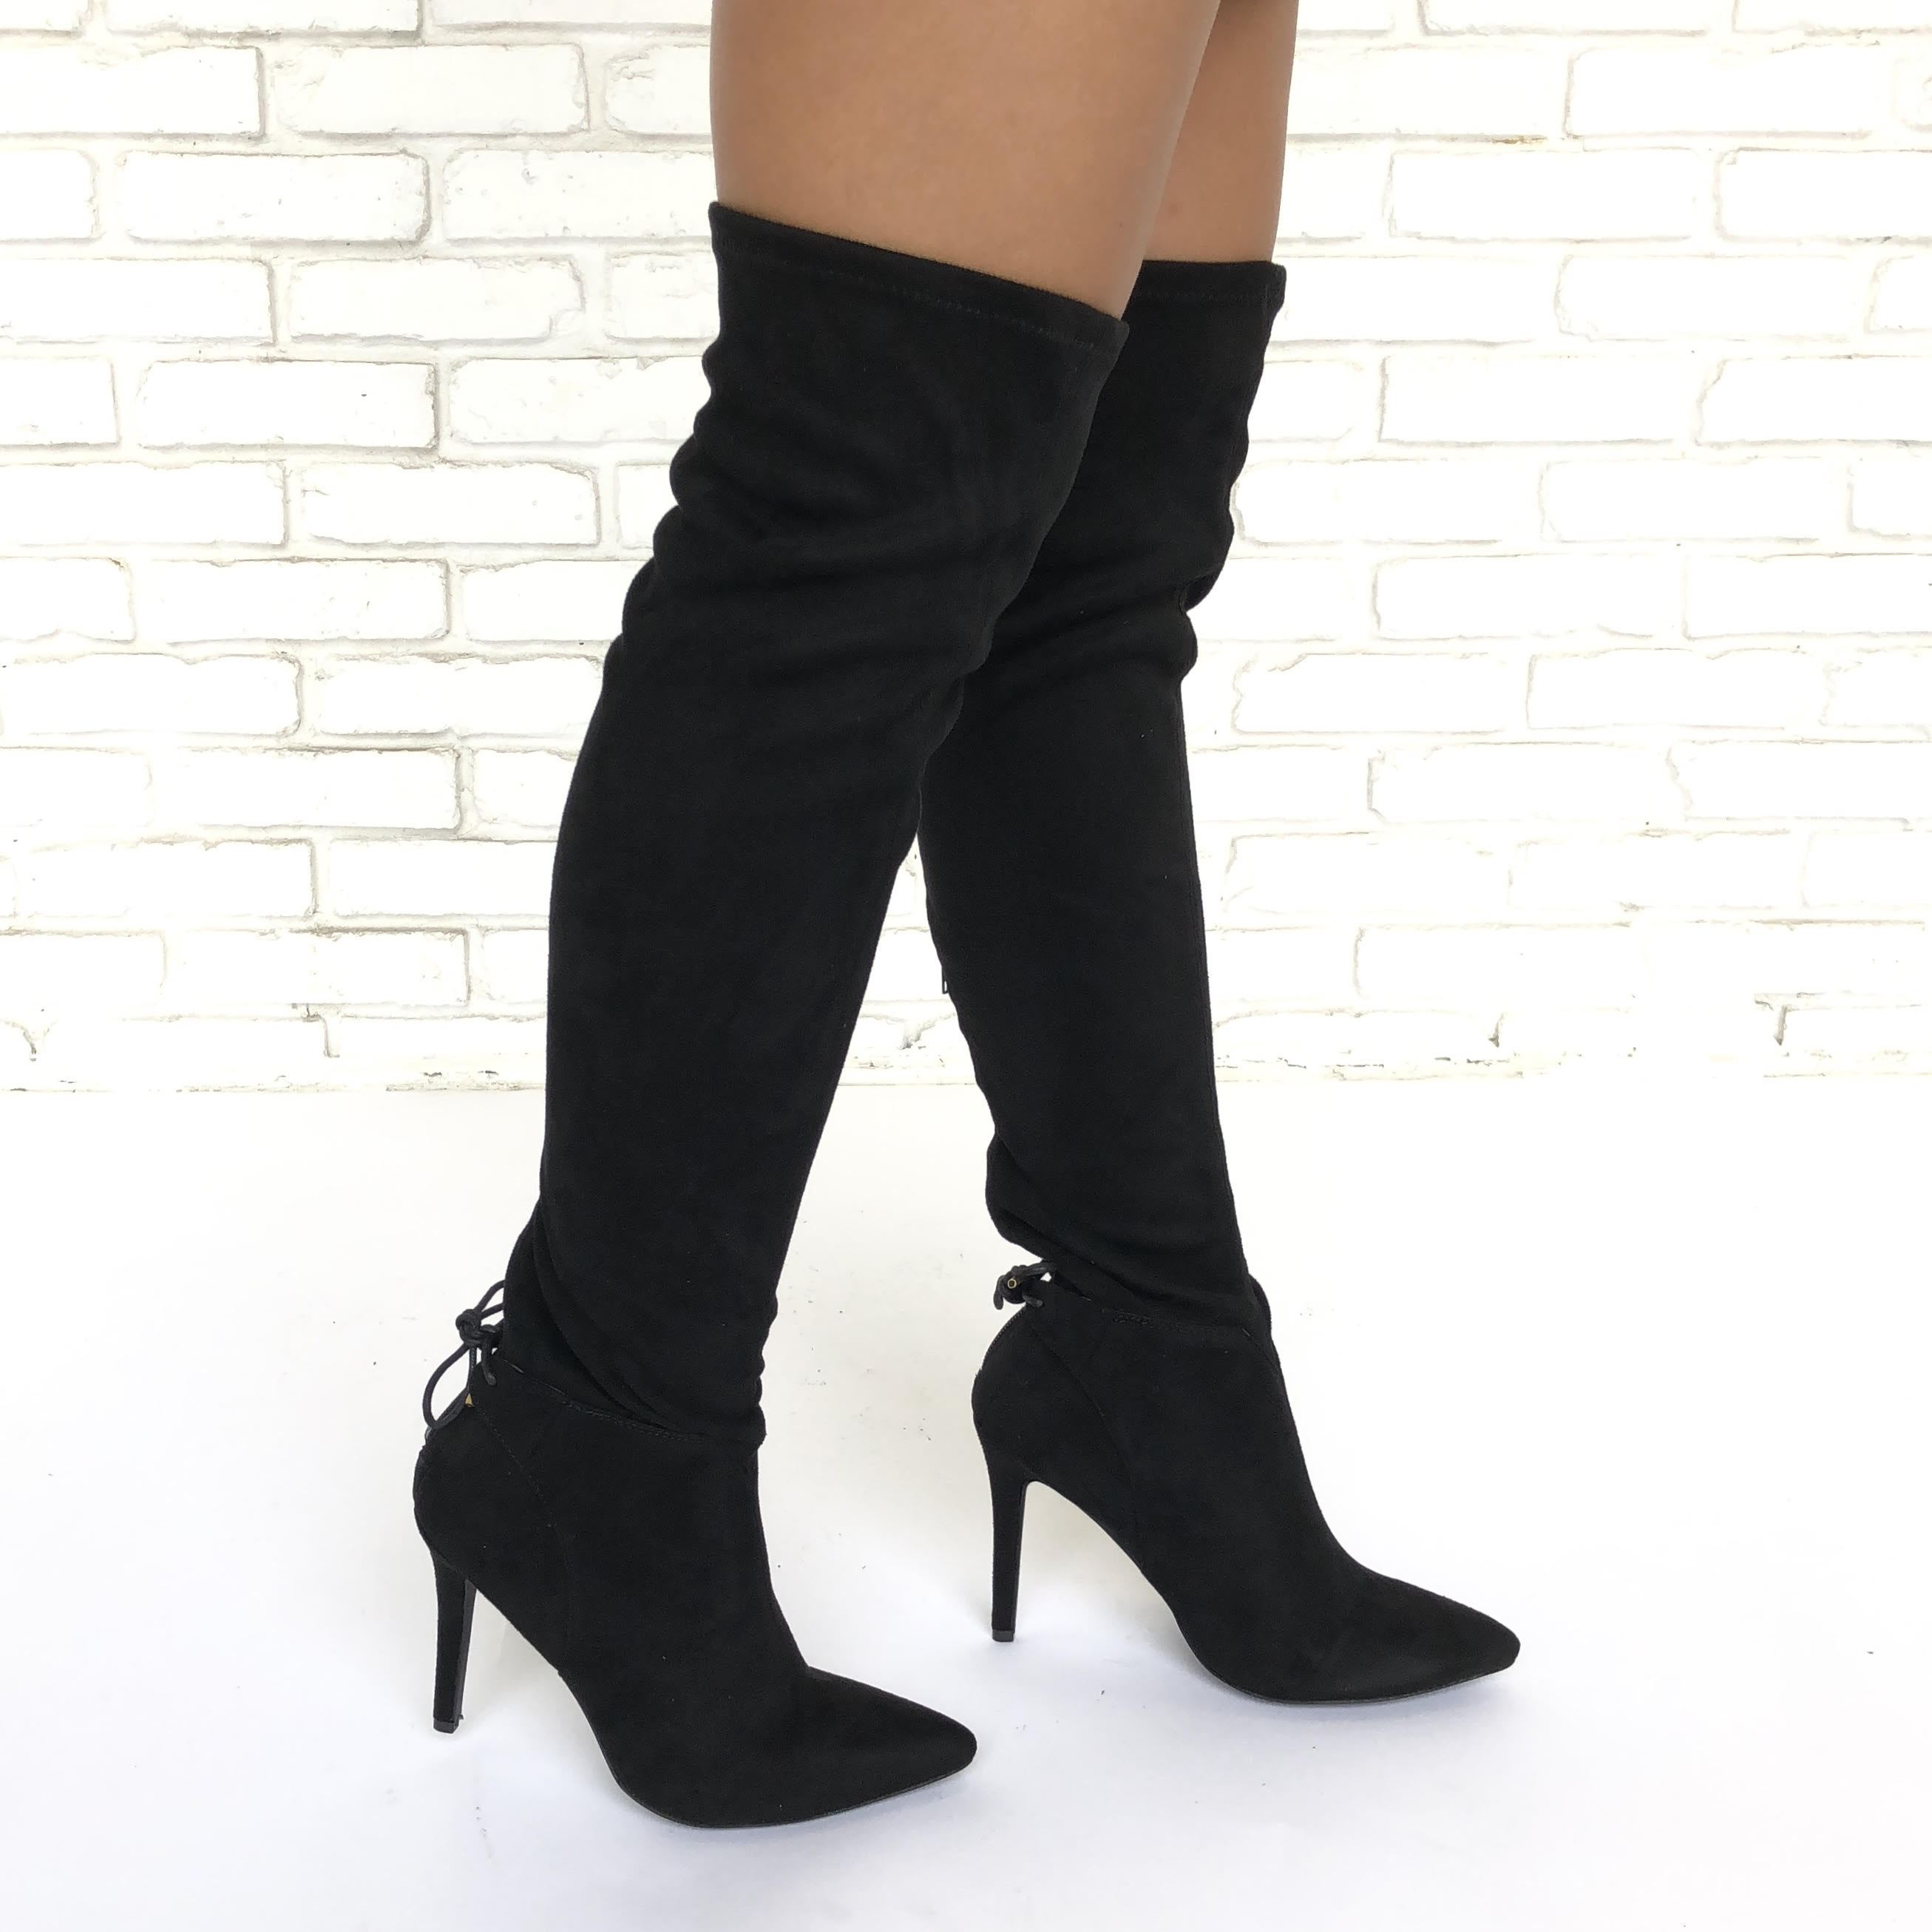 Image of Walk Tall Thigh High Heel Boots In Black